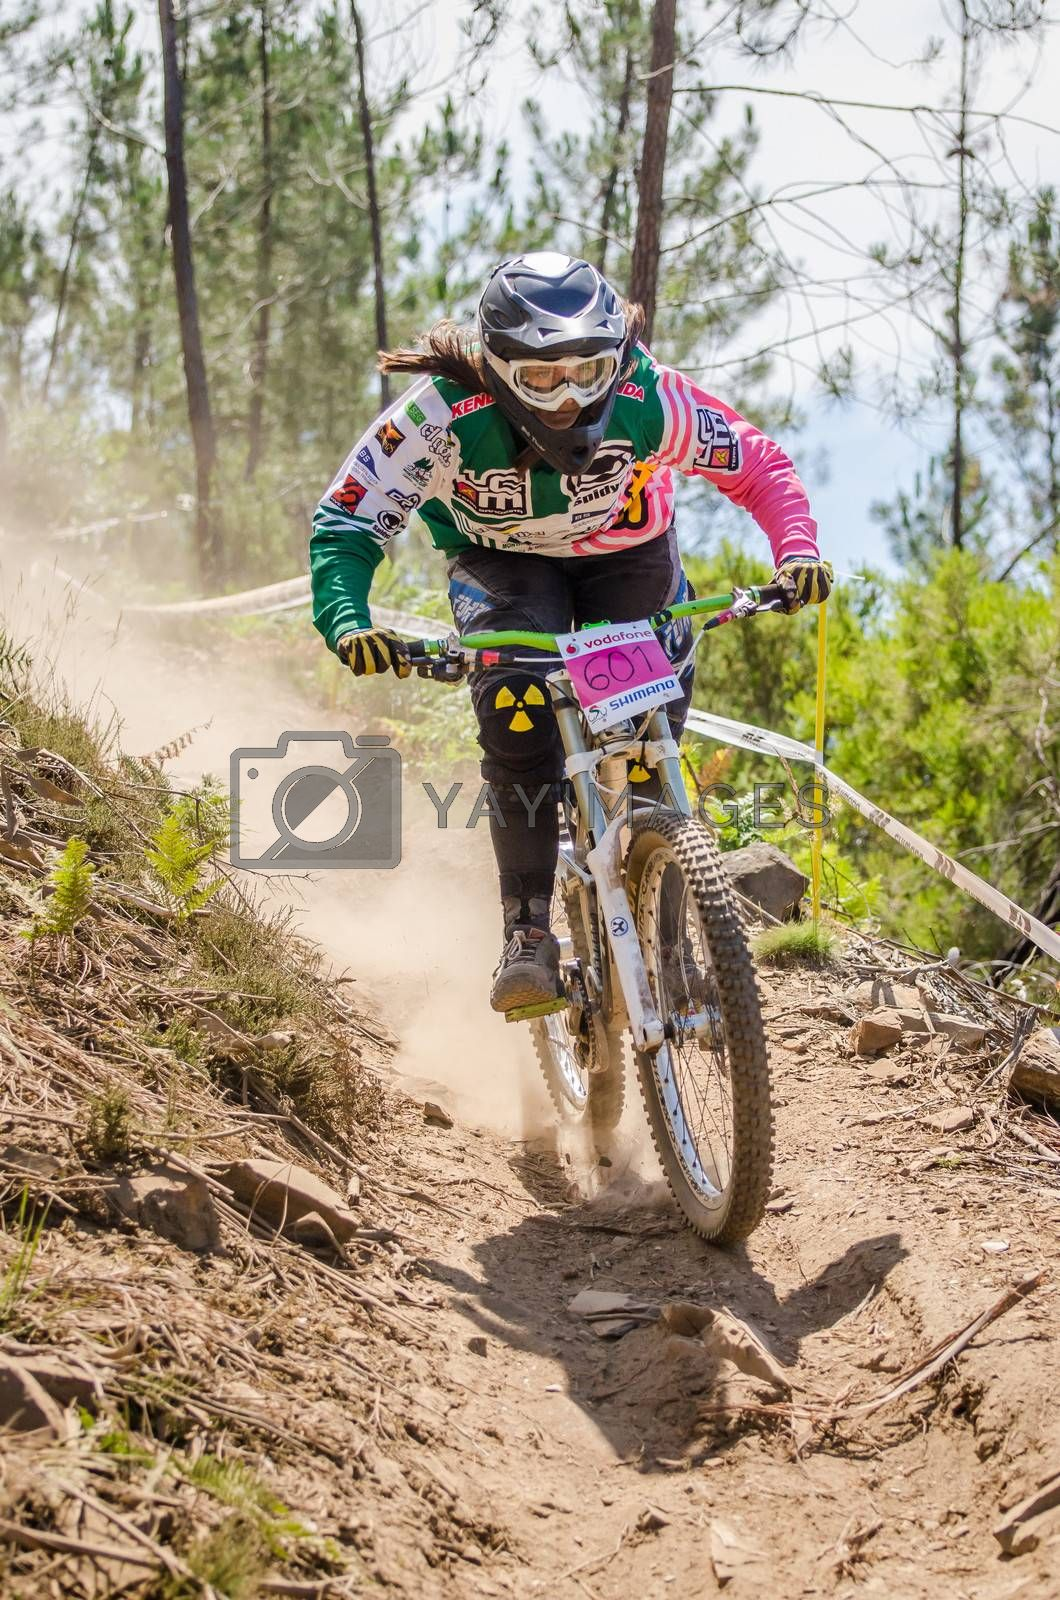 GOIS, PORTUGAL - JUNE 23: Margarida Bandeira during the 4th Stage of the Taca de Portugal Downhill Vodafone on june 23, 2013 in Gois, Portugal.